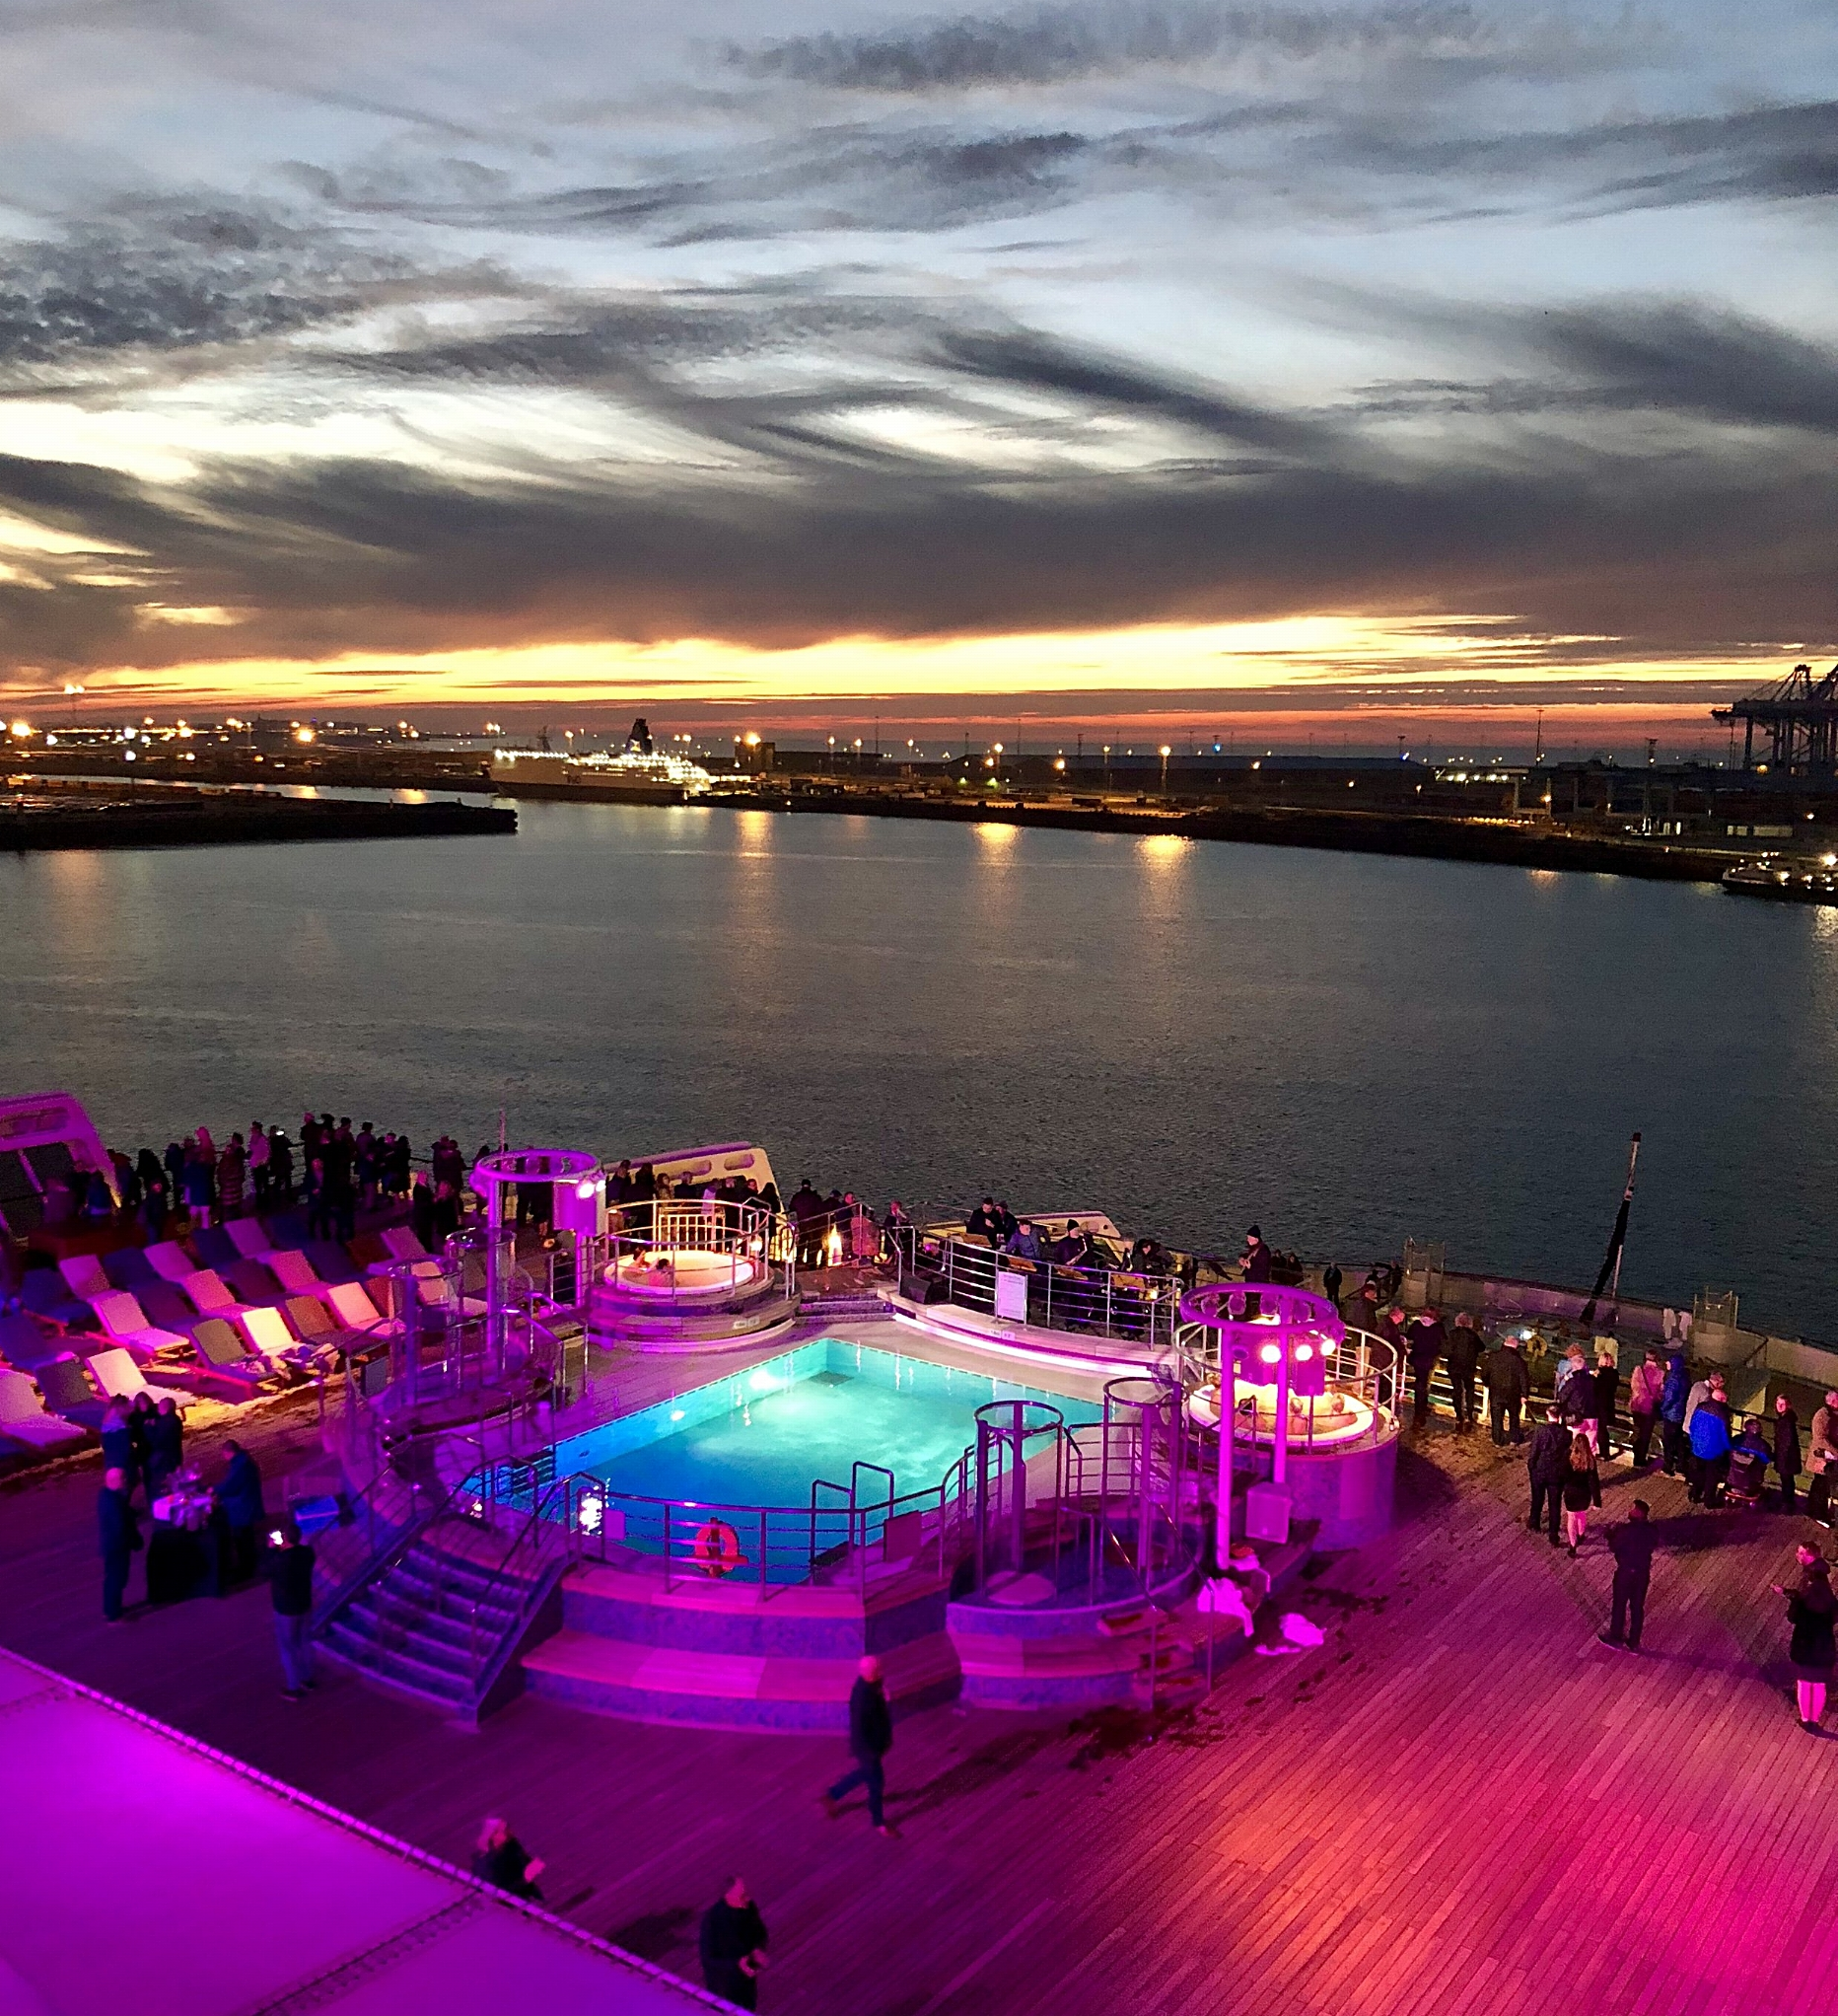 A very romantic sail-away party with live jazz, pretty lighting and the most amazing skies.